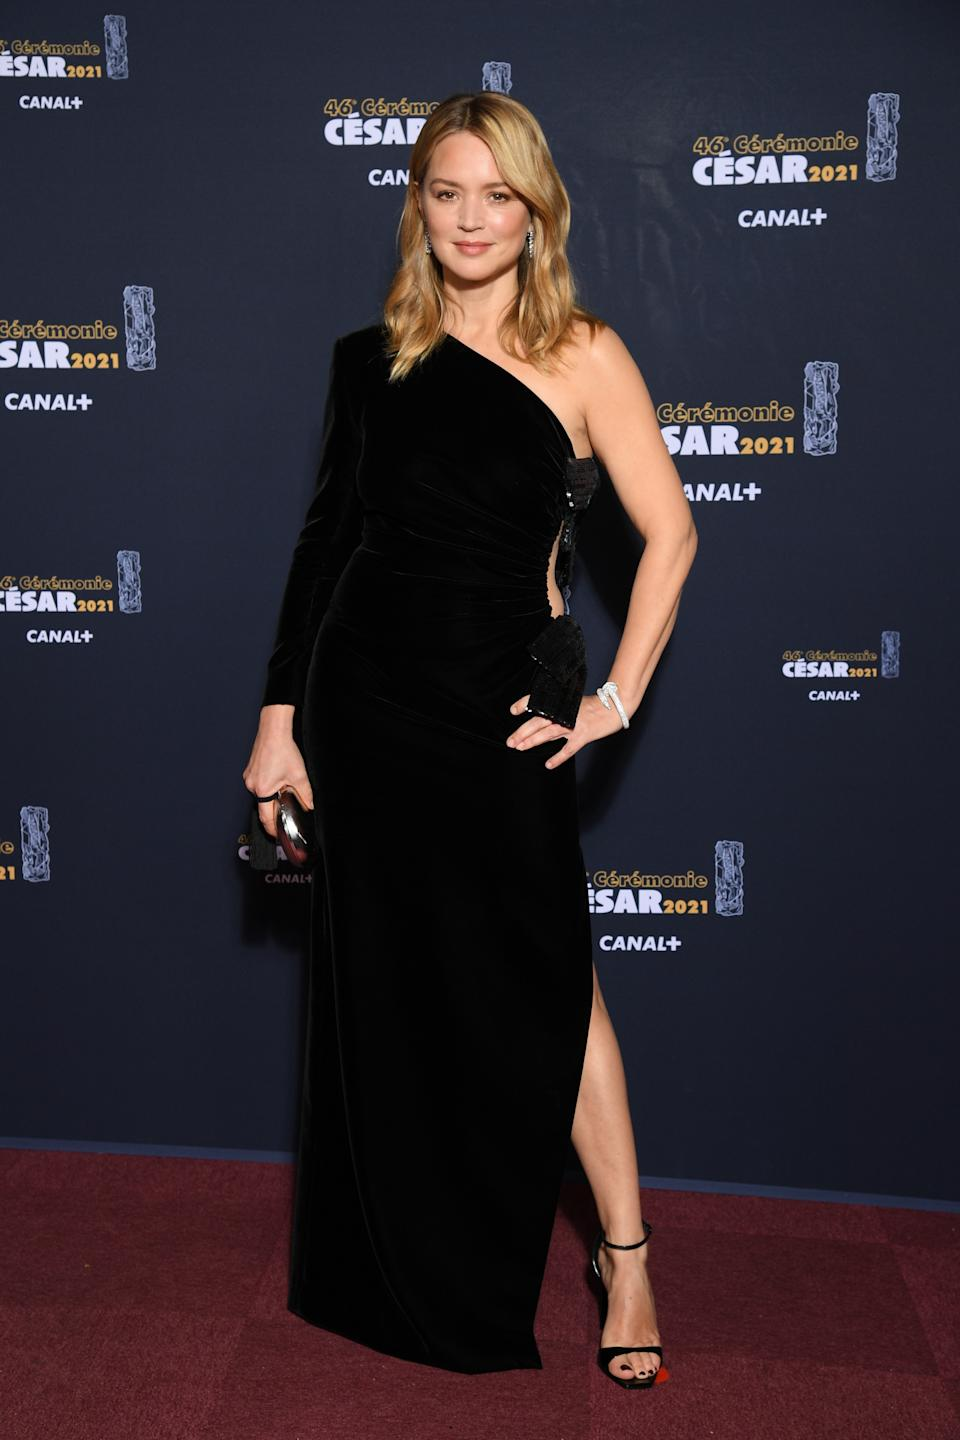 <p>Virginie Efira a joué sur l'asymétrie avec une robe fendue, décolletée sur une épaule. (Photo by Pascal Le Segretain/Pool/SC Pool - Corbis/Corbis via Getty Images)</p>